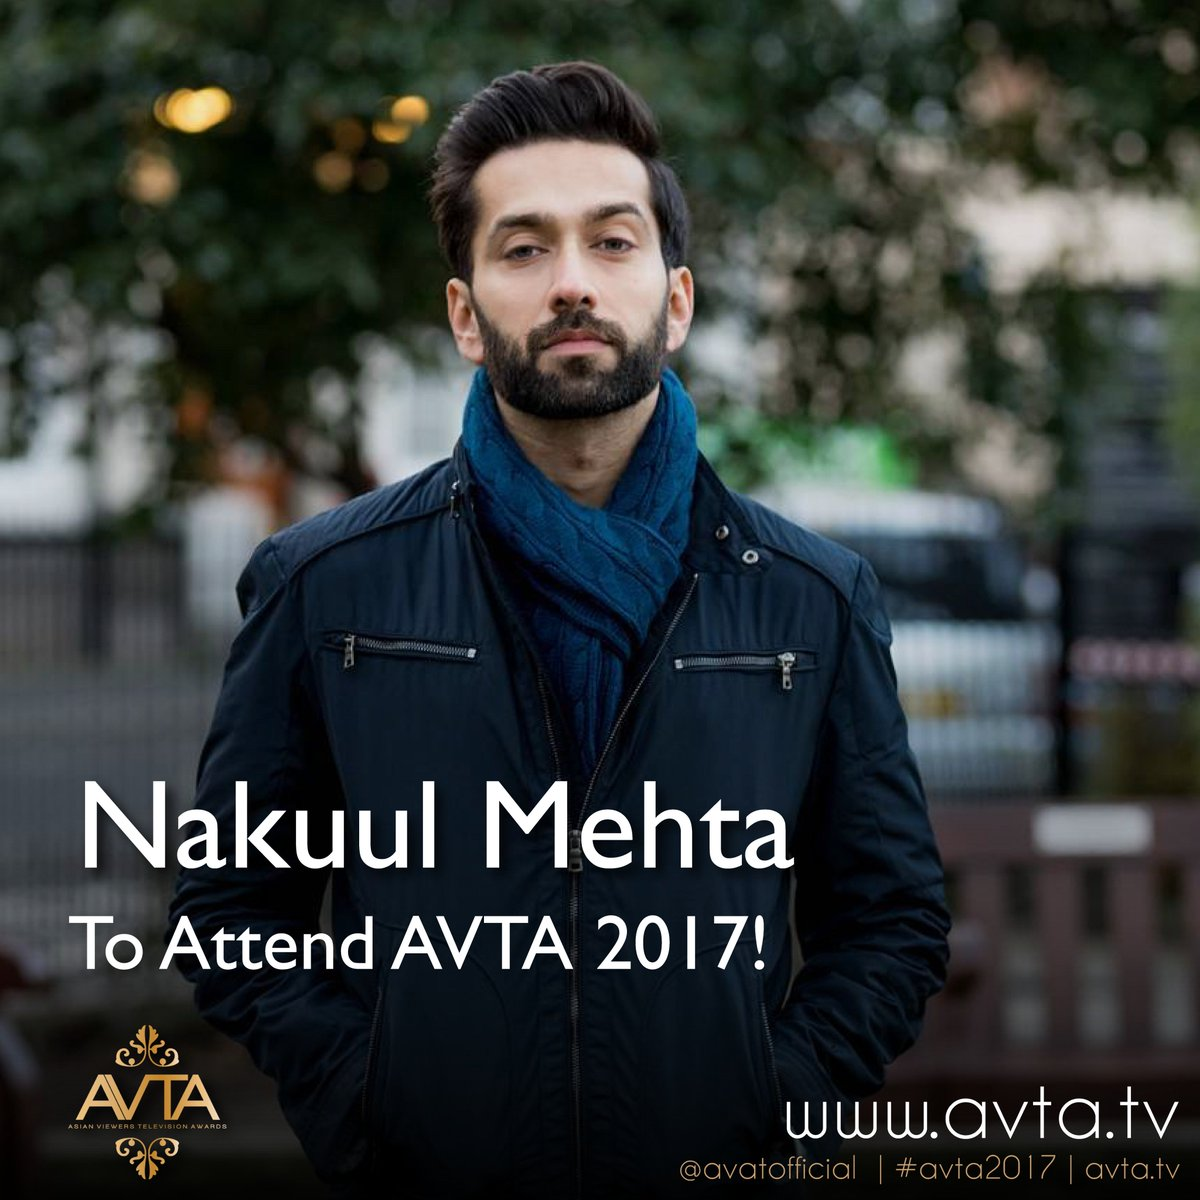 @NakuulMehta confirmed to attend!